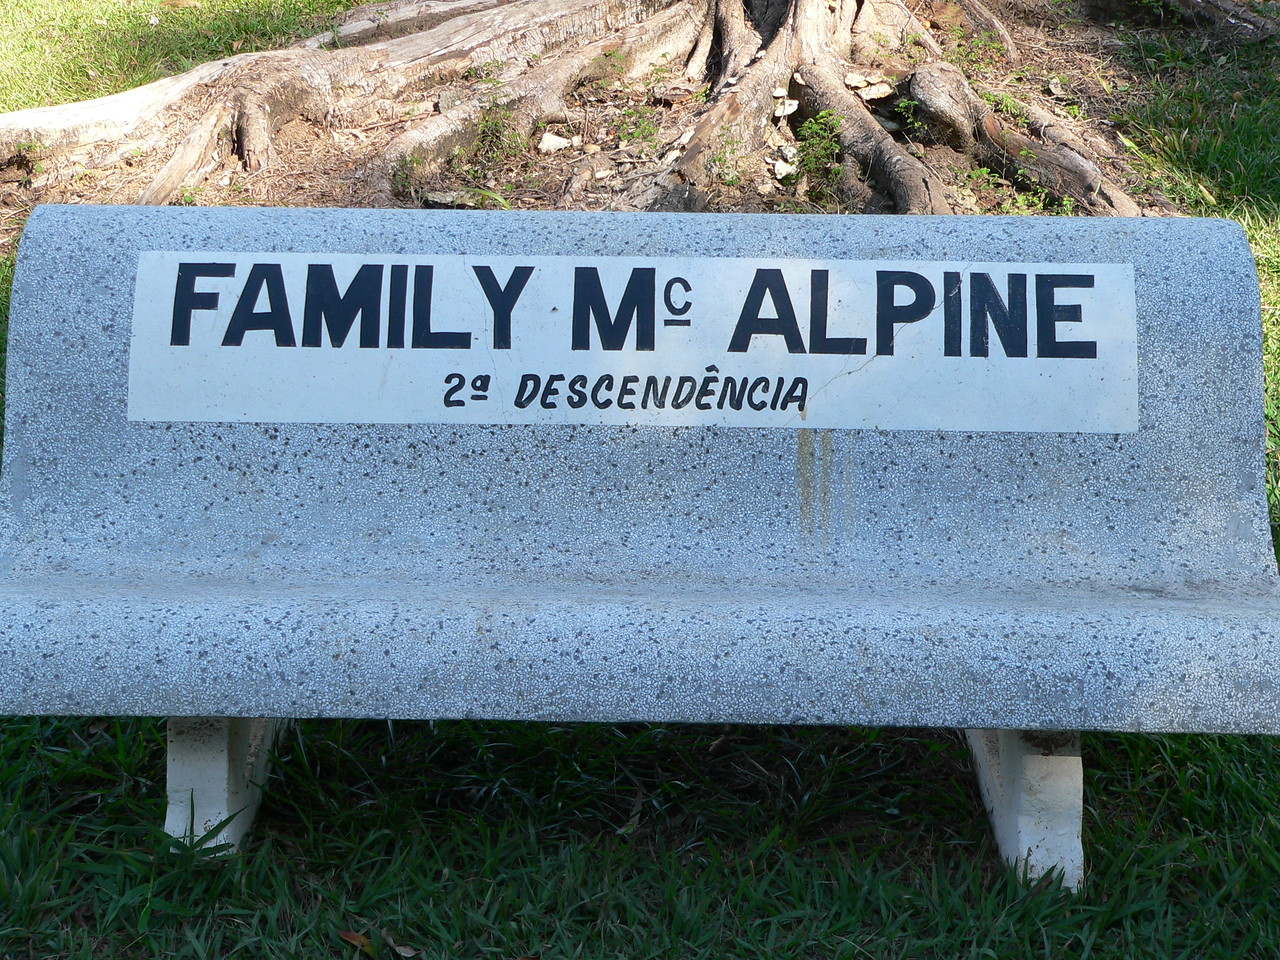 The second generation of the McAlpine family has donated the seating around the playing field.